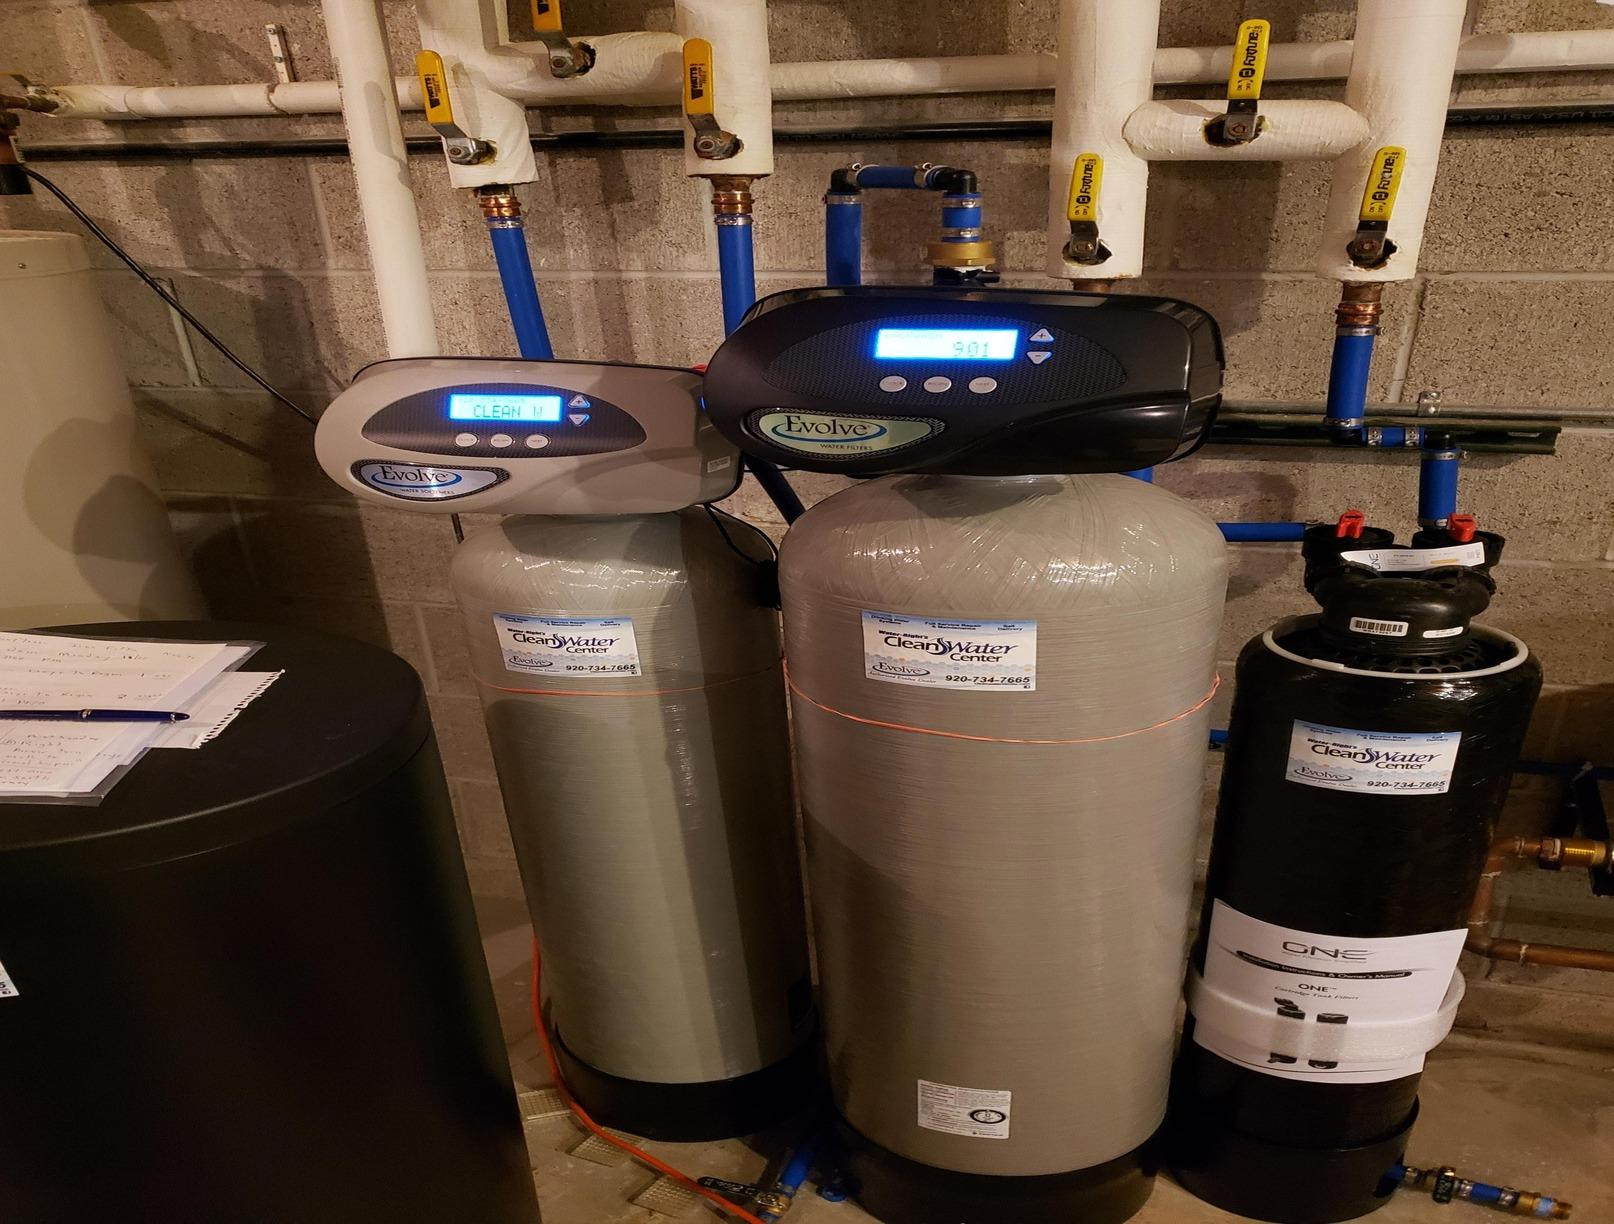 New Water Softener, Iron Filter, and Sediment Filter Installed in Mequon, WI - After Photo